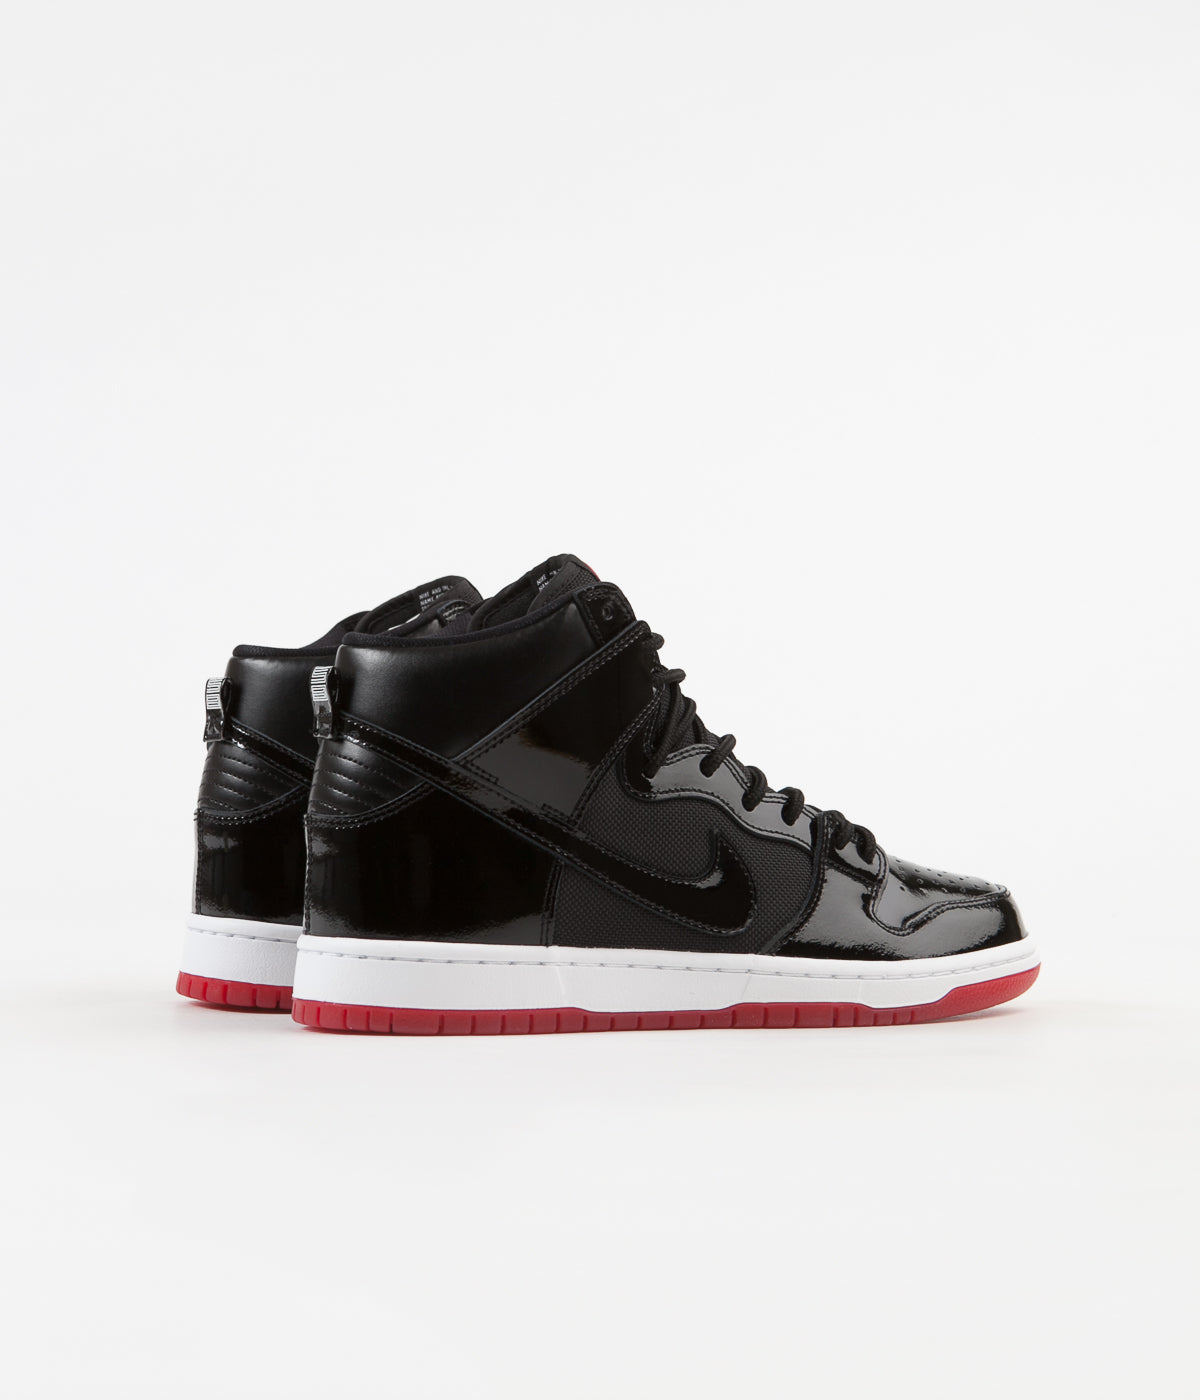 buy popular 87e59 6911a Nike SB Dunk High TR Shoes - Black / Black - White - Varsity ...